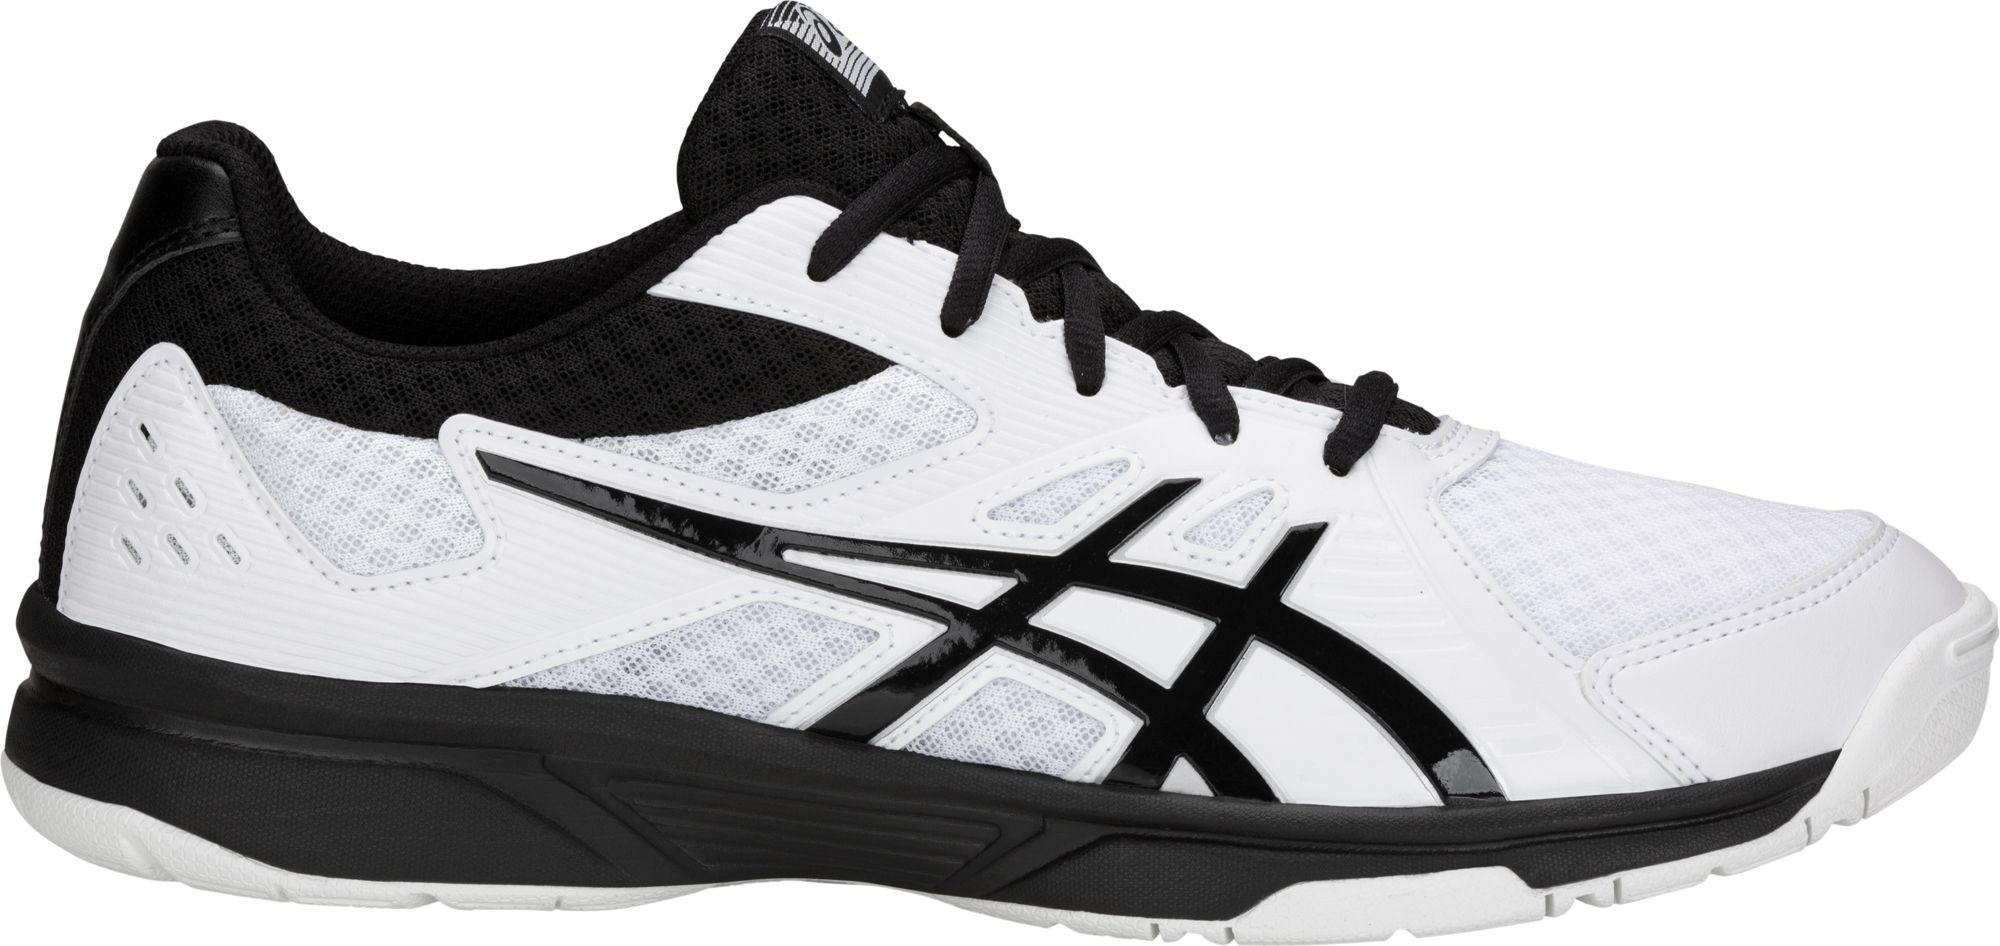 Asics Women S Upcourt 3 Volleyball Shoes Mens Volleyball Shoes Volleyball Shoes Asics Men